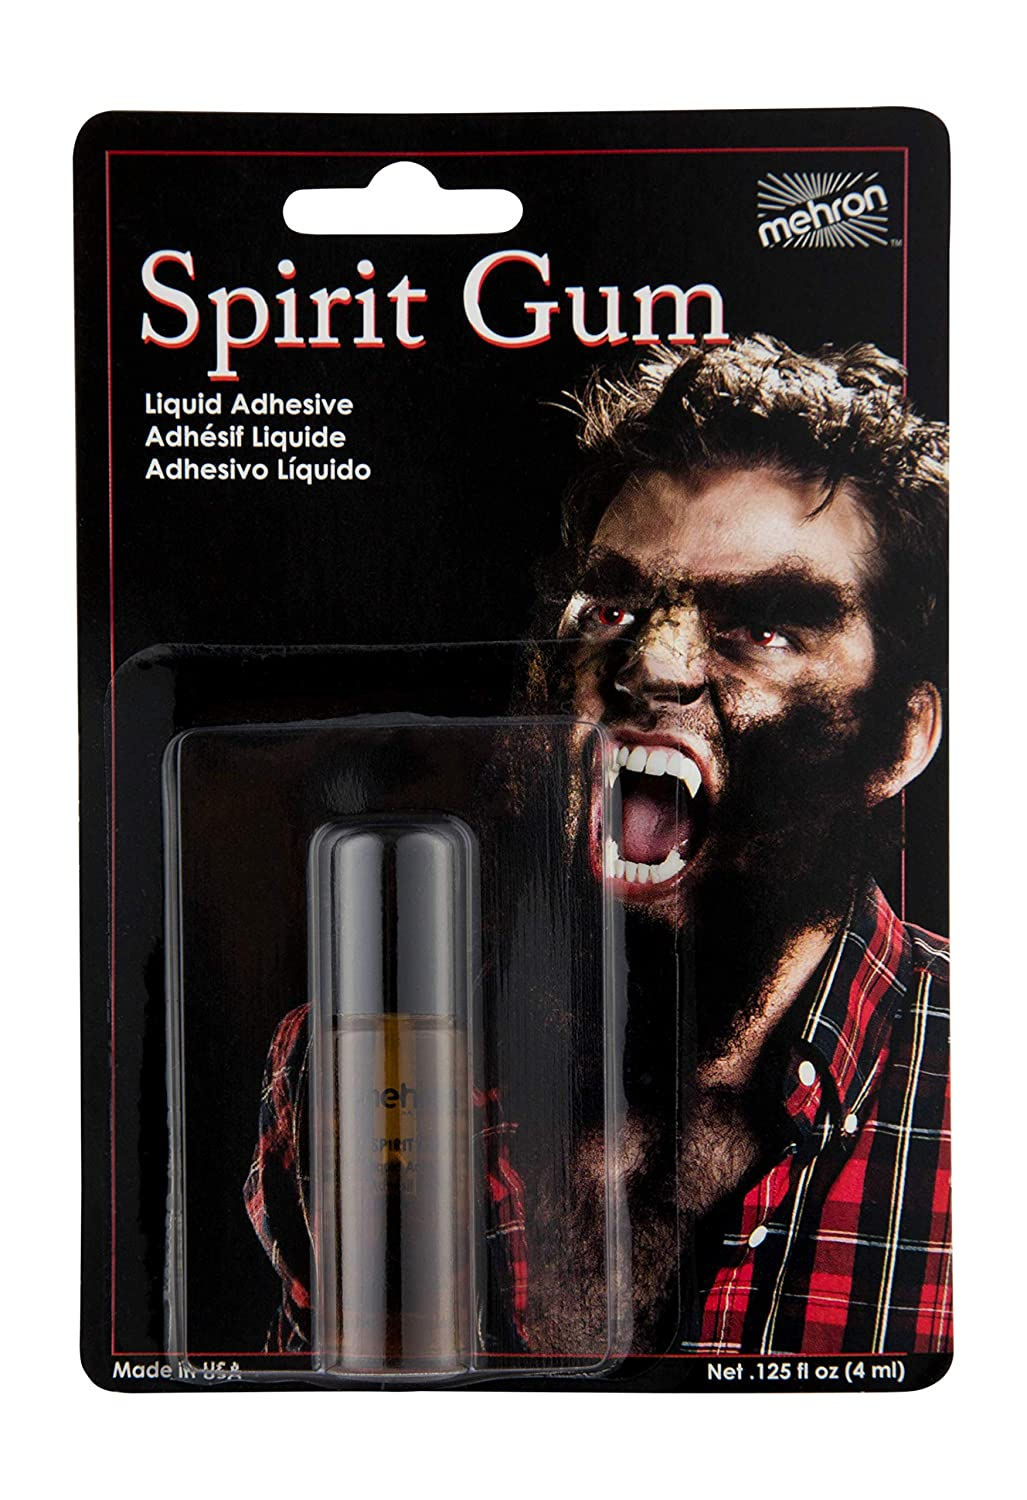 118 Mehron Spirit Gum Liquid Adhesive (Available in Many Sizes)